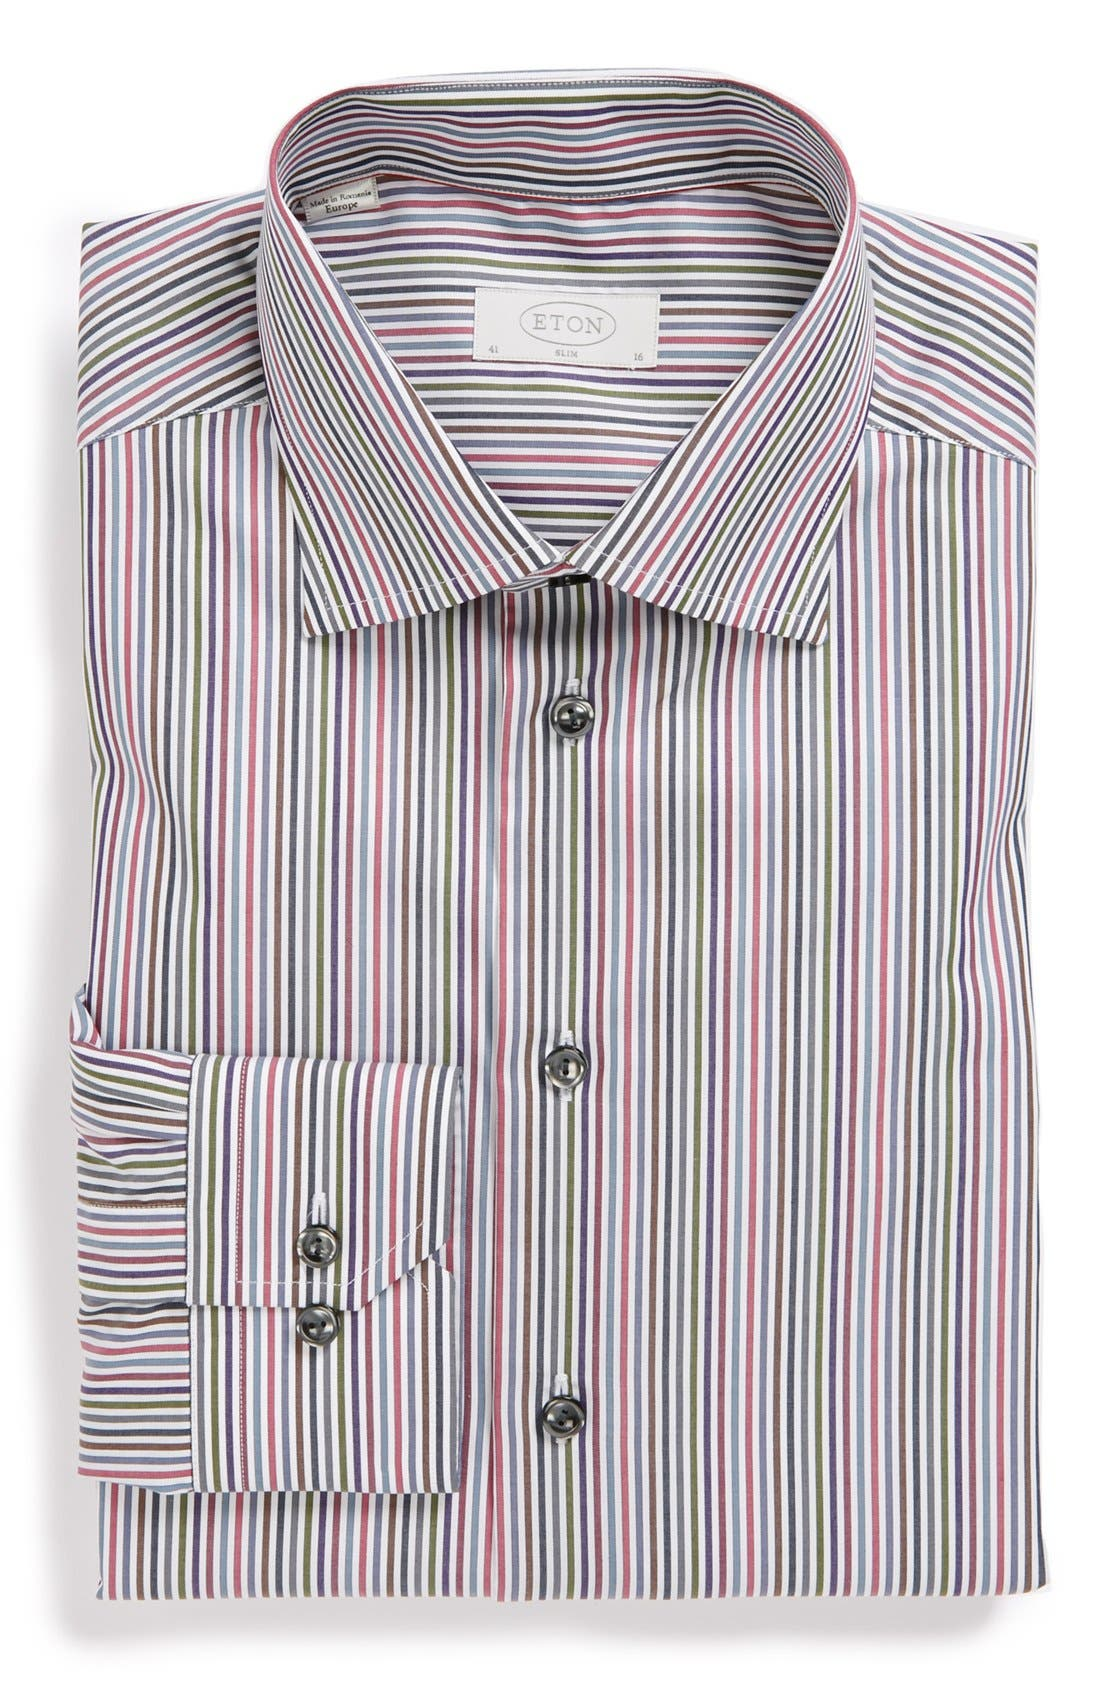 Alternate Image 1 Selected - Eton Slim Fit Dress Shirt